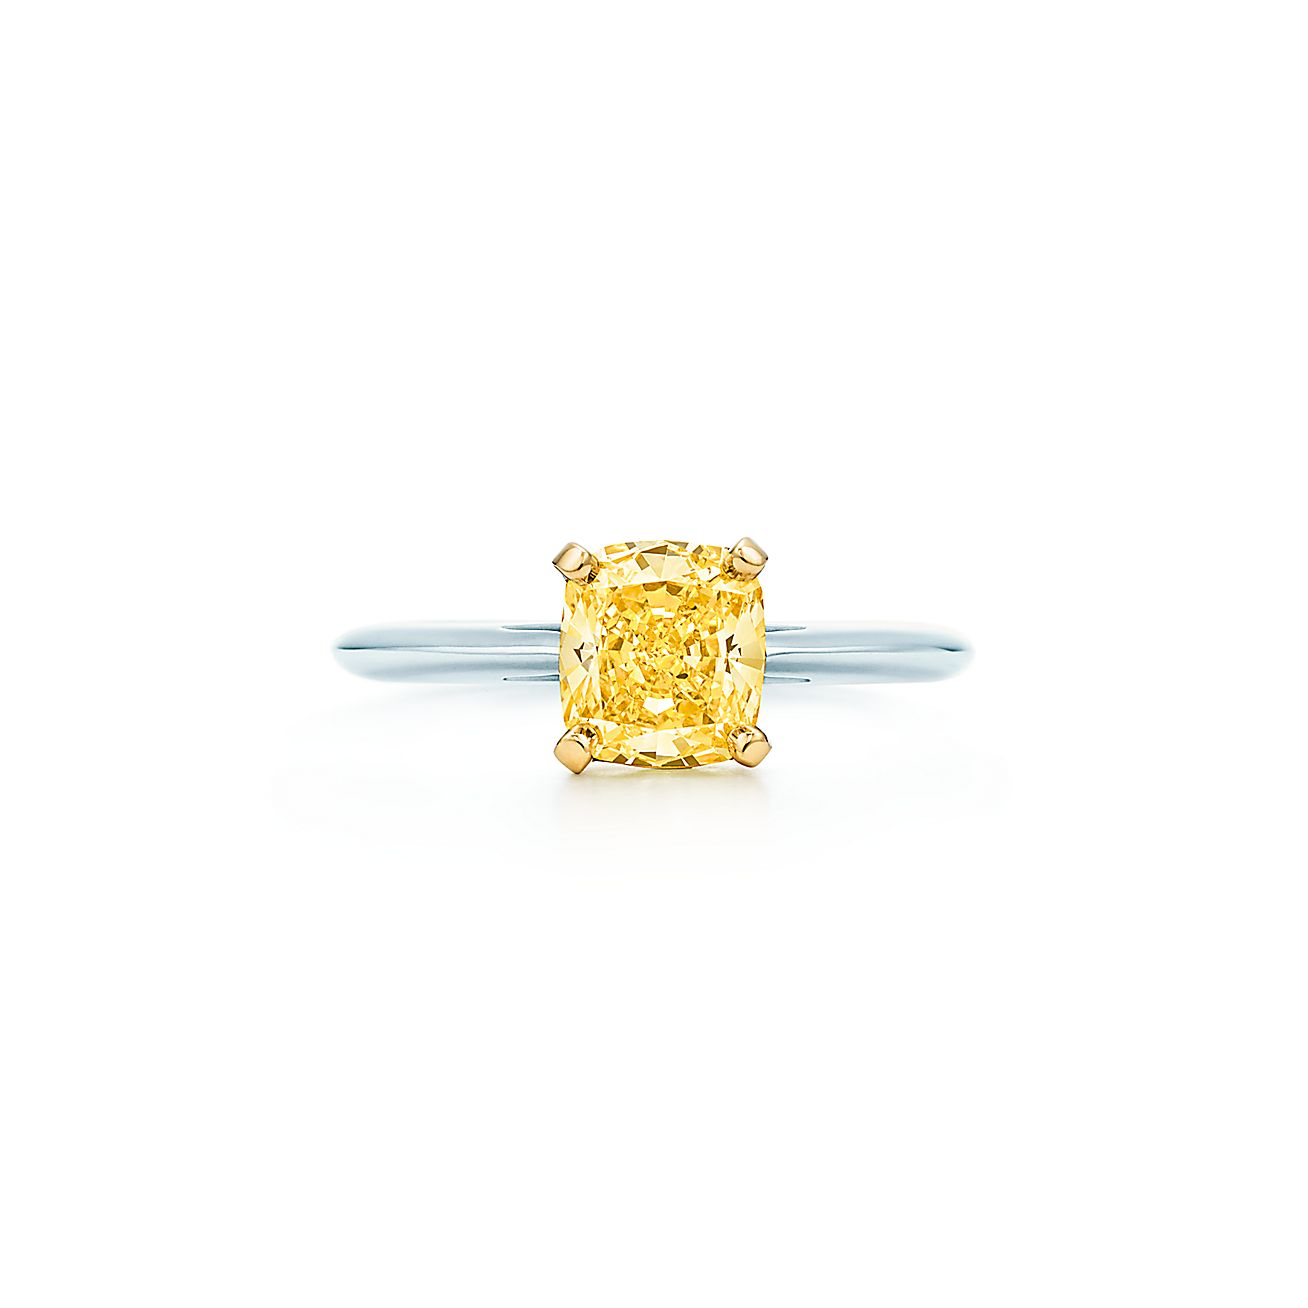 Ring In Platinum With A Cushion Cut Yellow Diamond